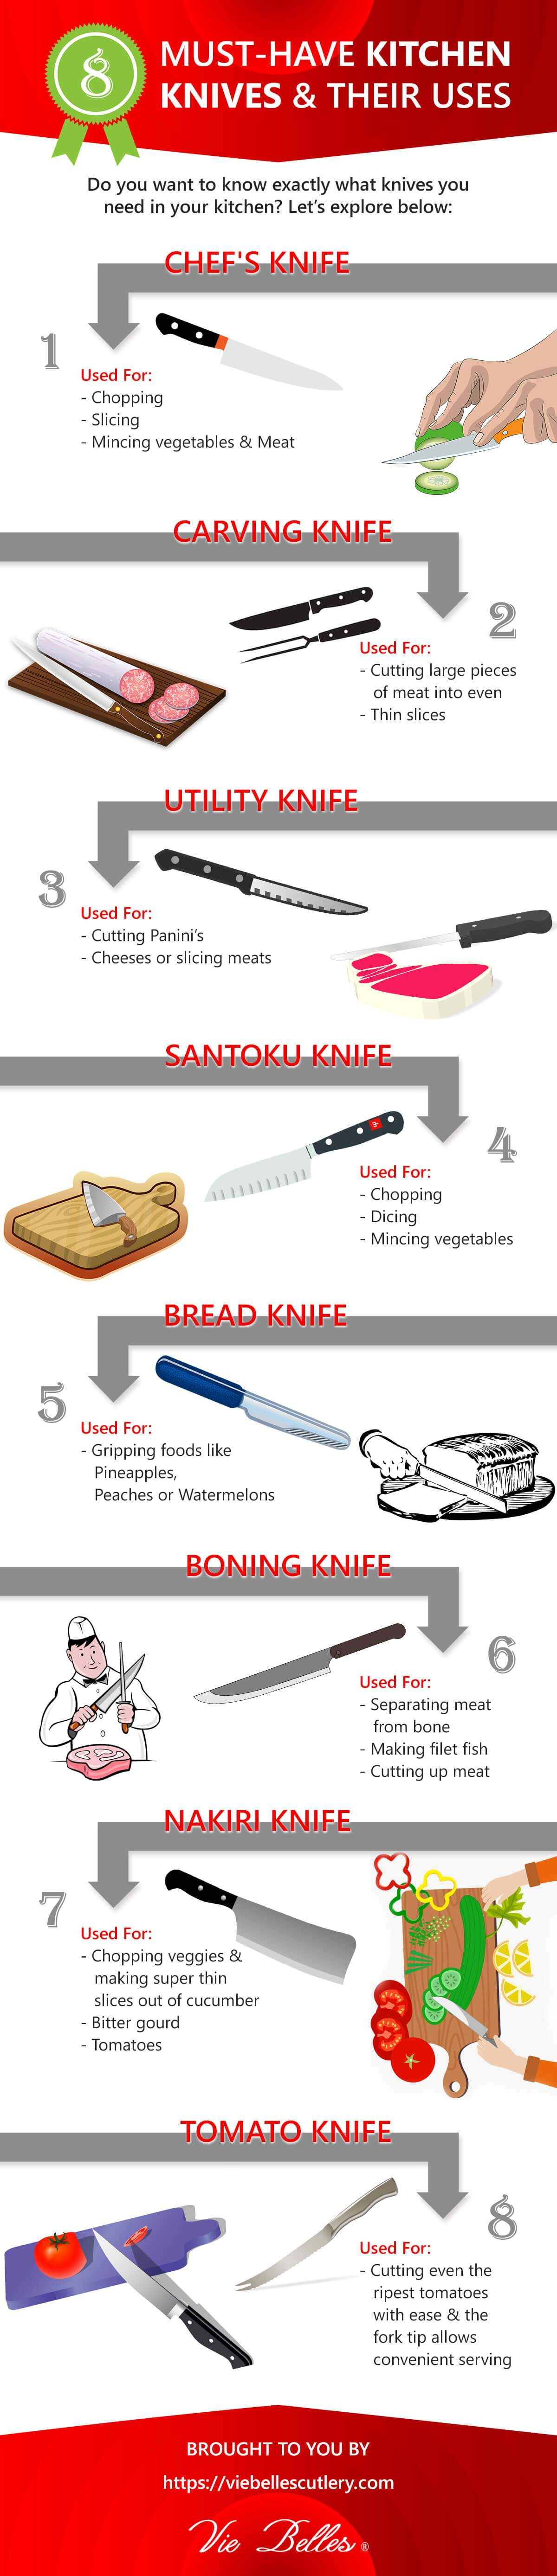 8 Must-Have Kitchen Knives and Their Uses on a Daily Bases